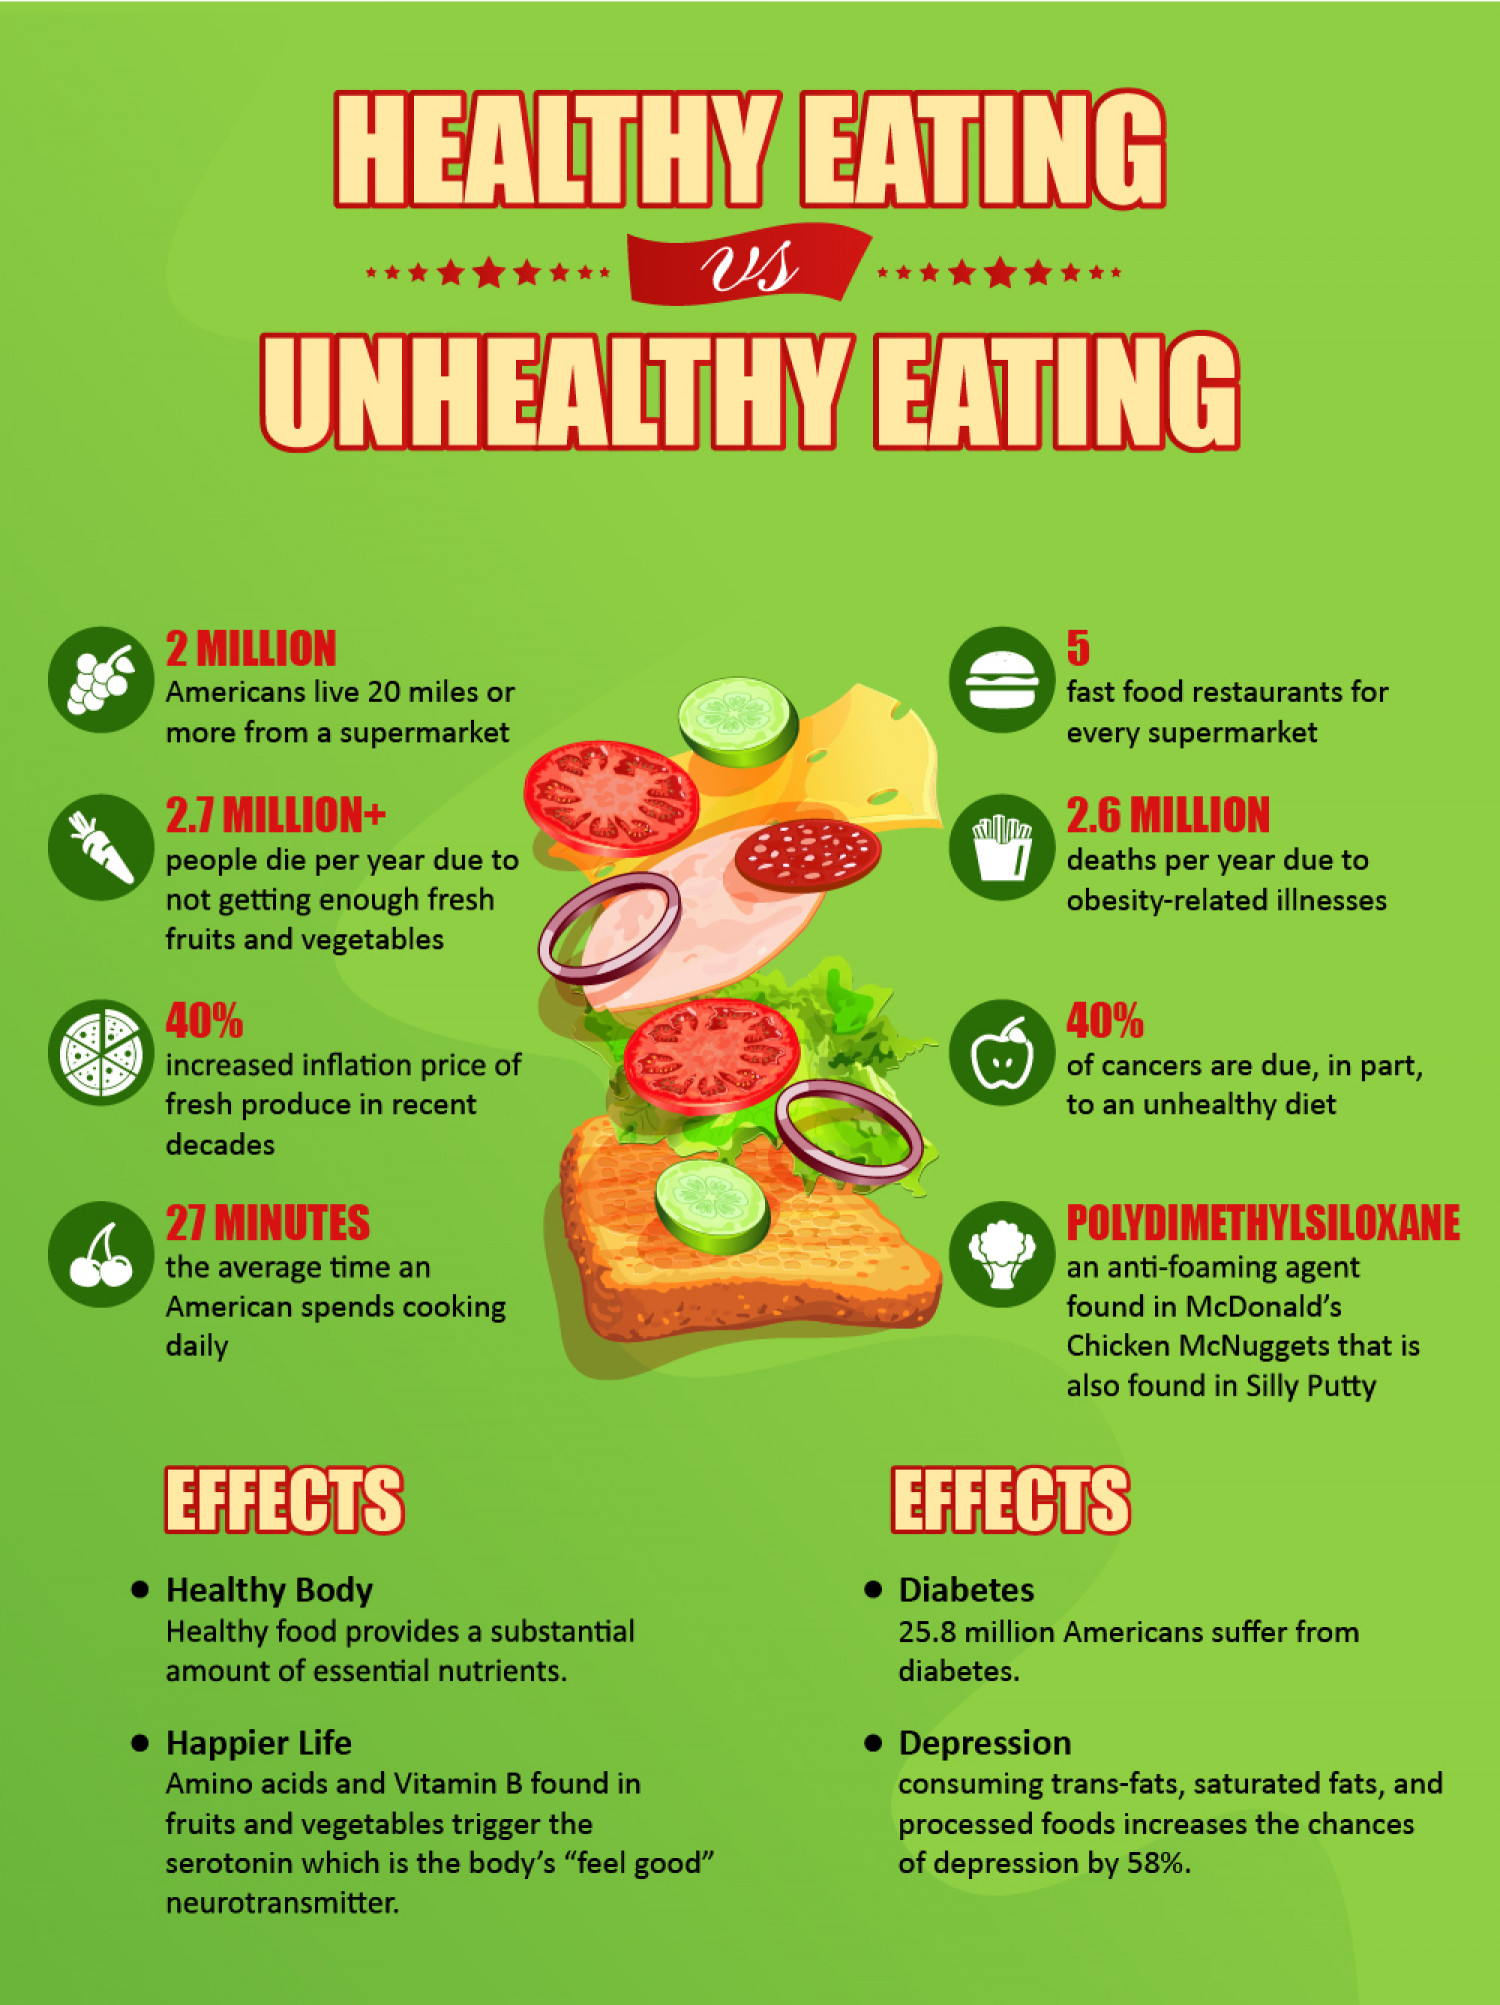 What Are The Benefits Of Eating Healthy Vs Eating